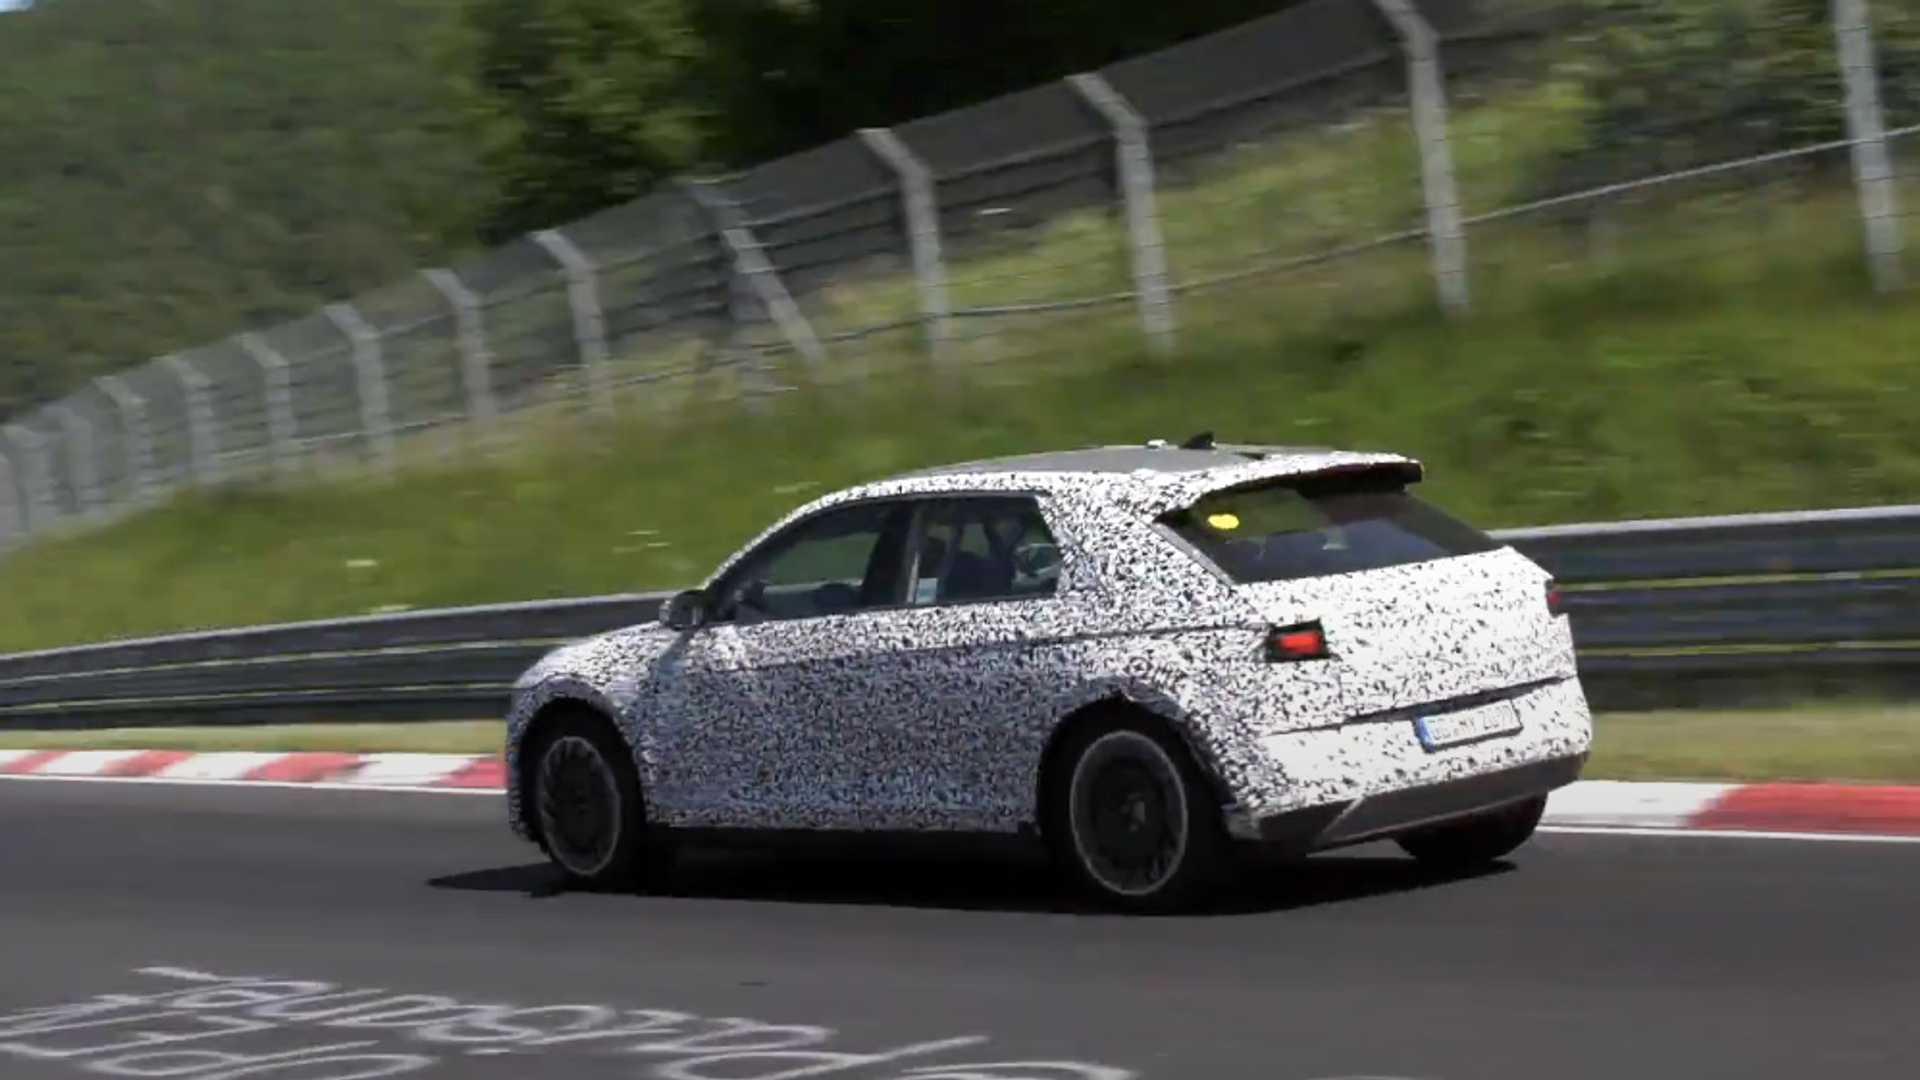 2022 Hyundai Ioniq 5 Sporty Electric Crossover Takes To The Nurburgring